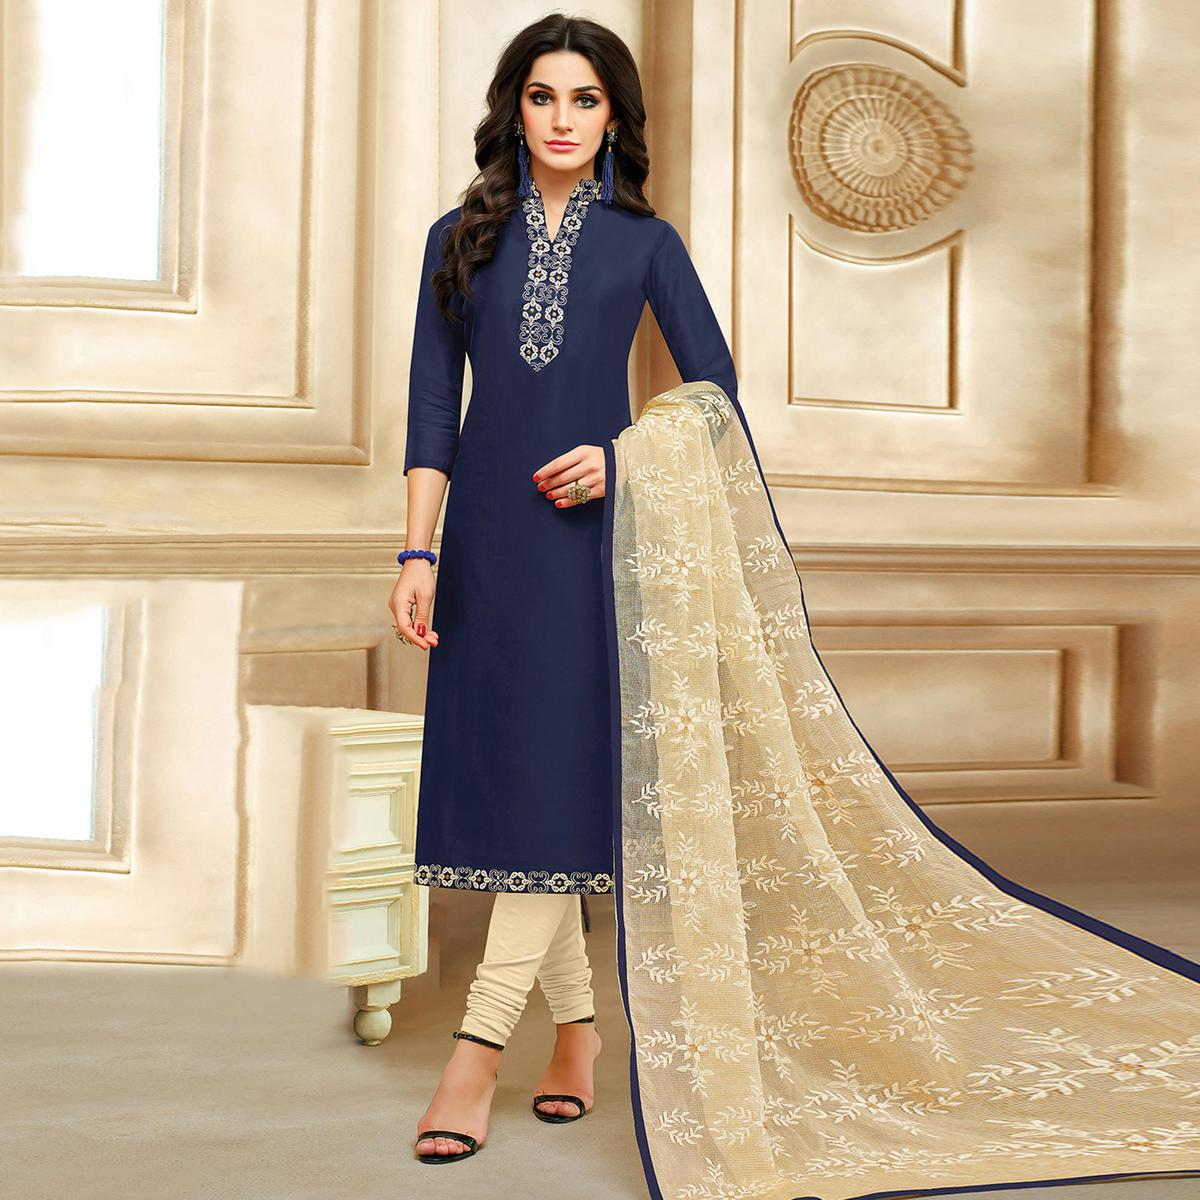 Starring Navy Blue Colored Embroidered Chanderi Silk Suit